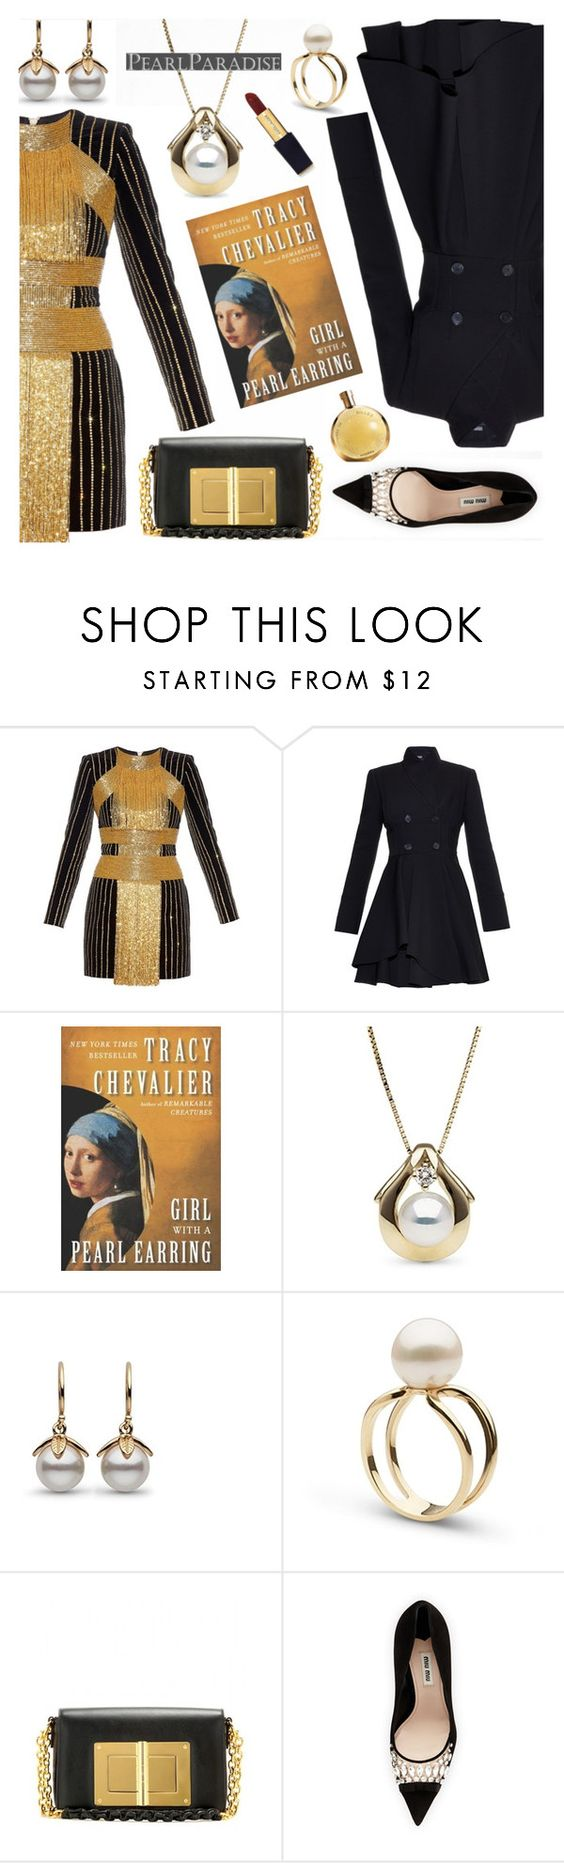 """""""Celebrate the New Year with PEARL PARADISE"""" by the-reluctant-dragon ❤ liked on Polyvore featuring Balmain, Alexander McQueen, Tom Ford, Miu Miu, Hermès, pearljewelry and pearlparadise"""